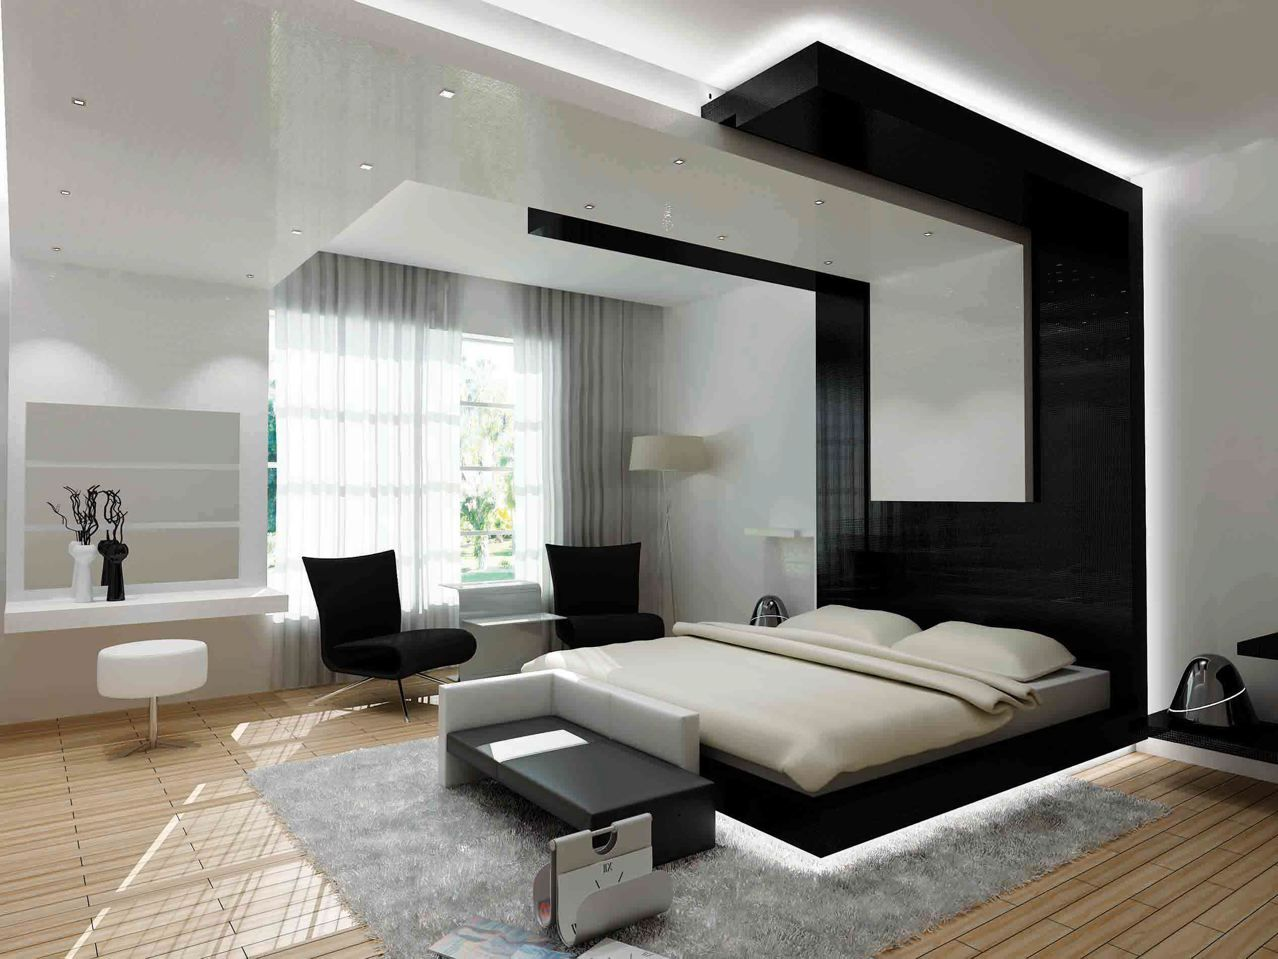 25 Best Modern Bedroom Designs Contemporary Bedroom Design Cozy Bedroom Design Modern Master Bedroom